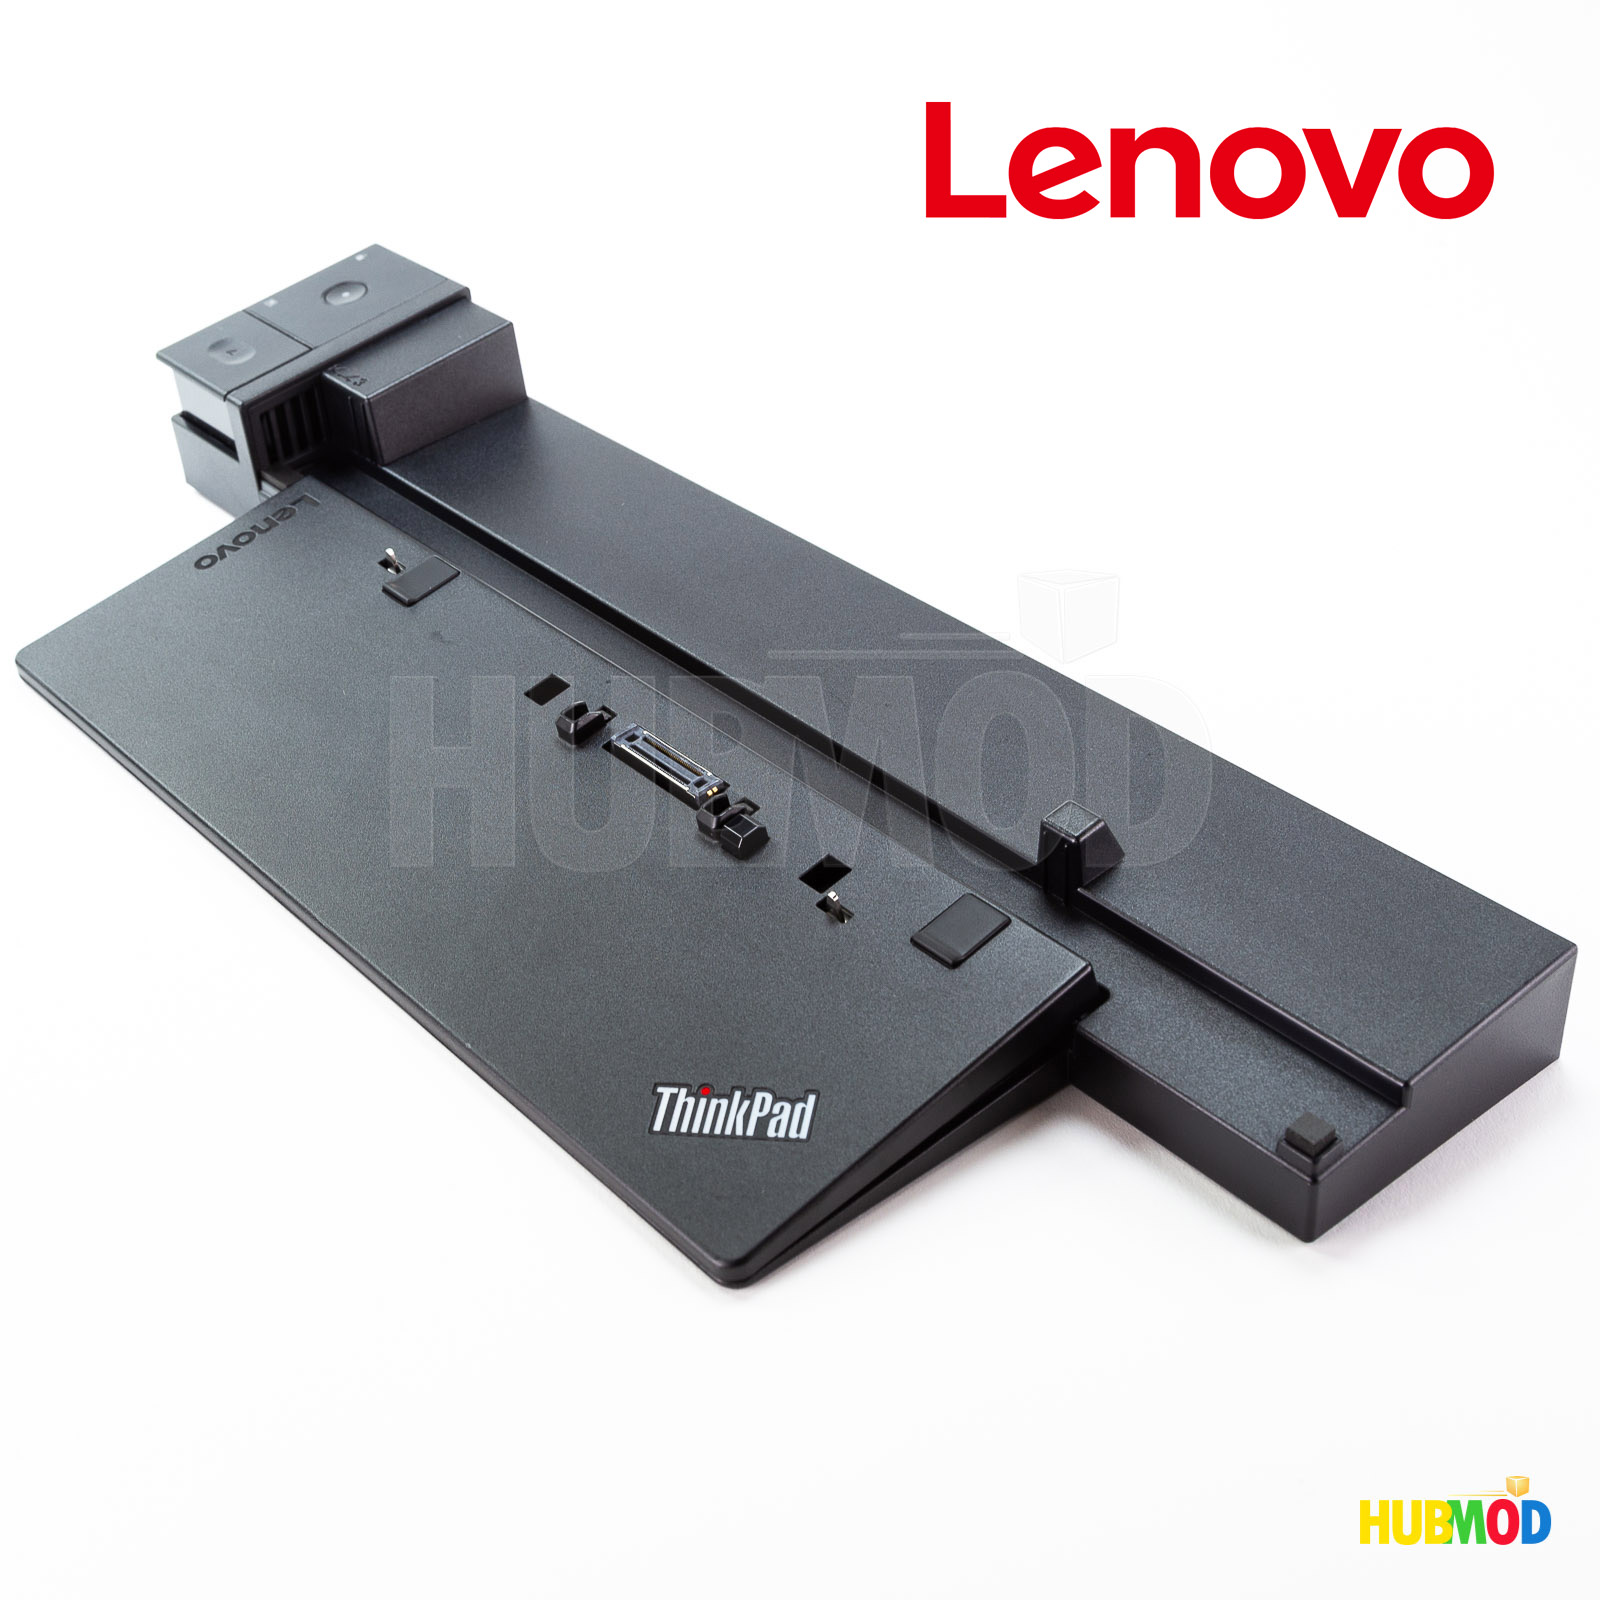 Details about Lenovo ThinkPad Workstation Docking Station 40A5 P50 P51 P70  P71 04W3955 Dock